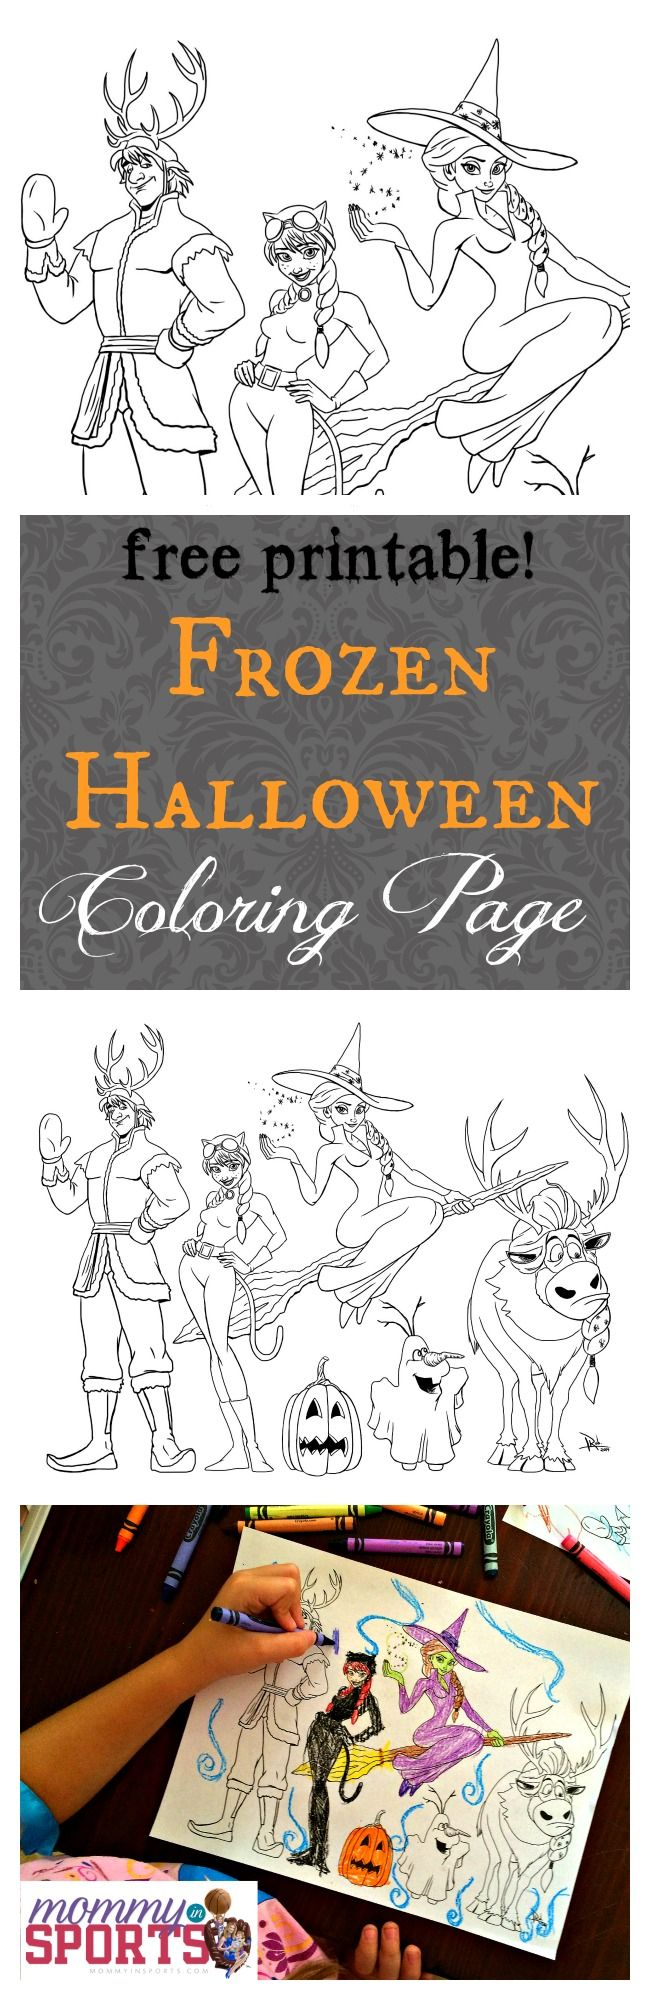 Color book party mn - Frozen Halloween Coloring Page Mommy In Sports